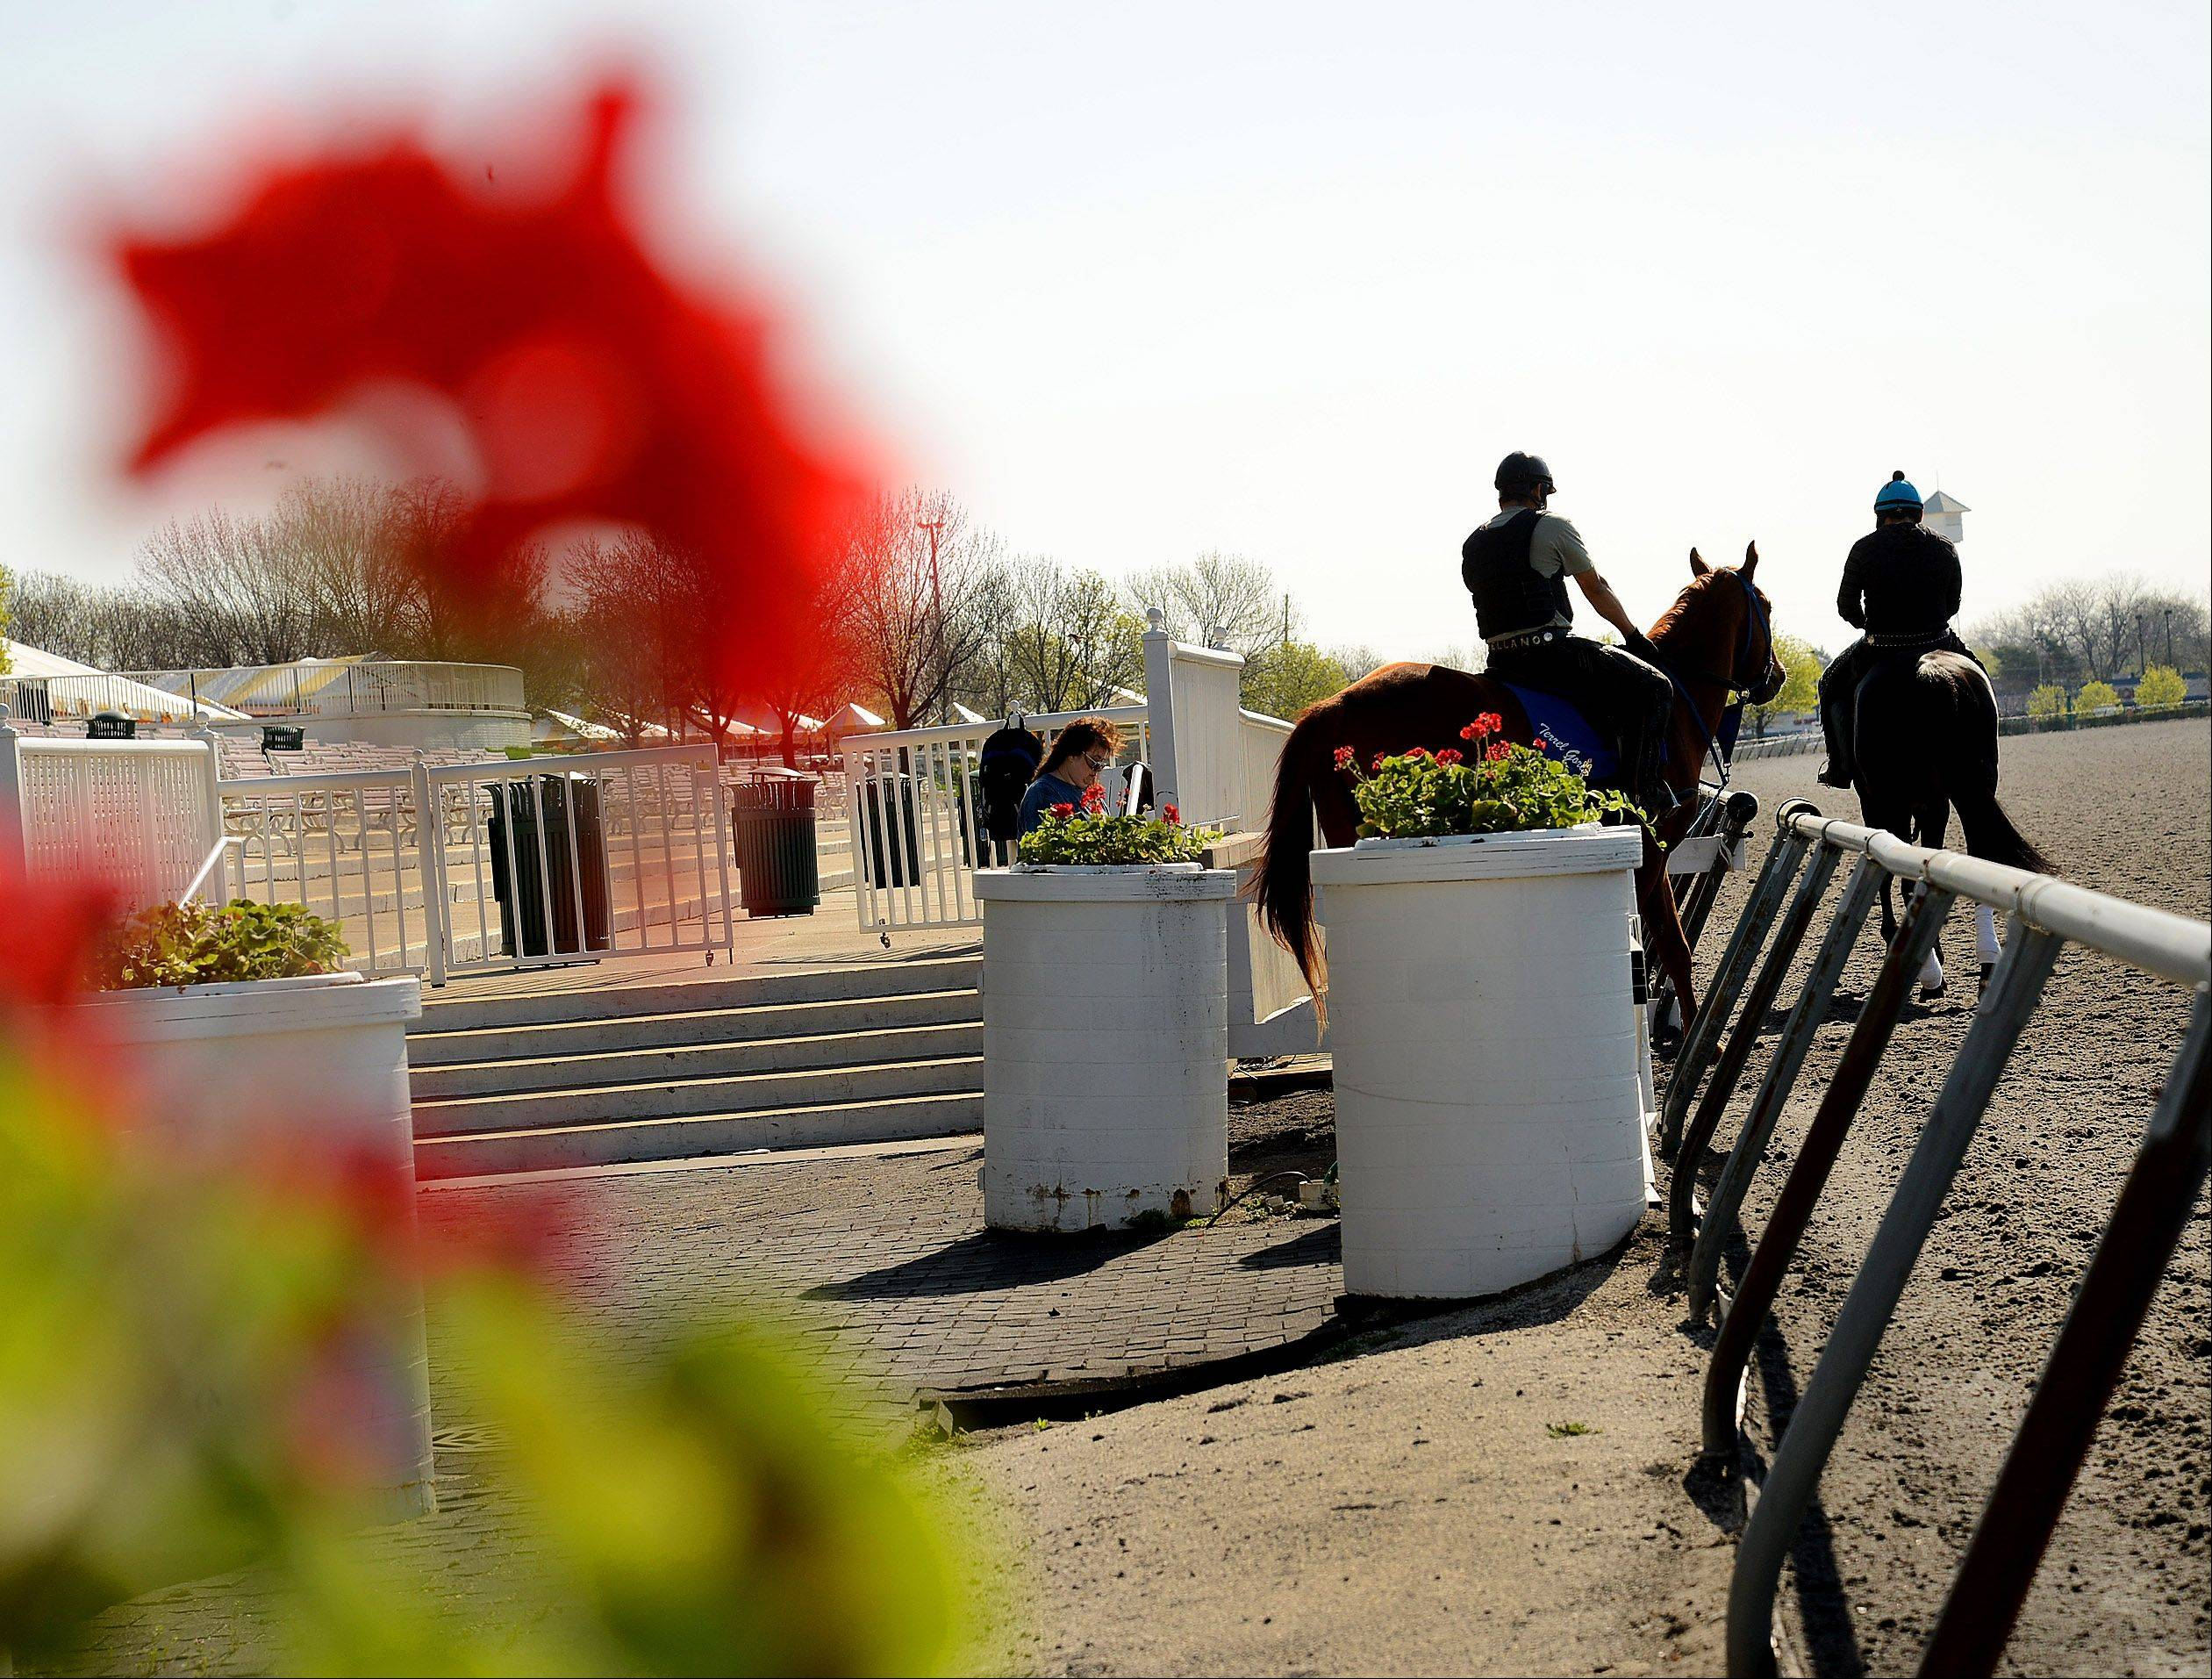 Images: Opening day preparations at Arlington International Racecourse